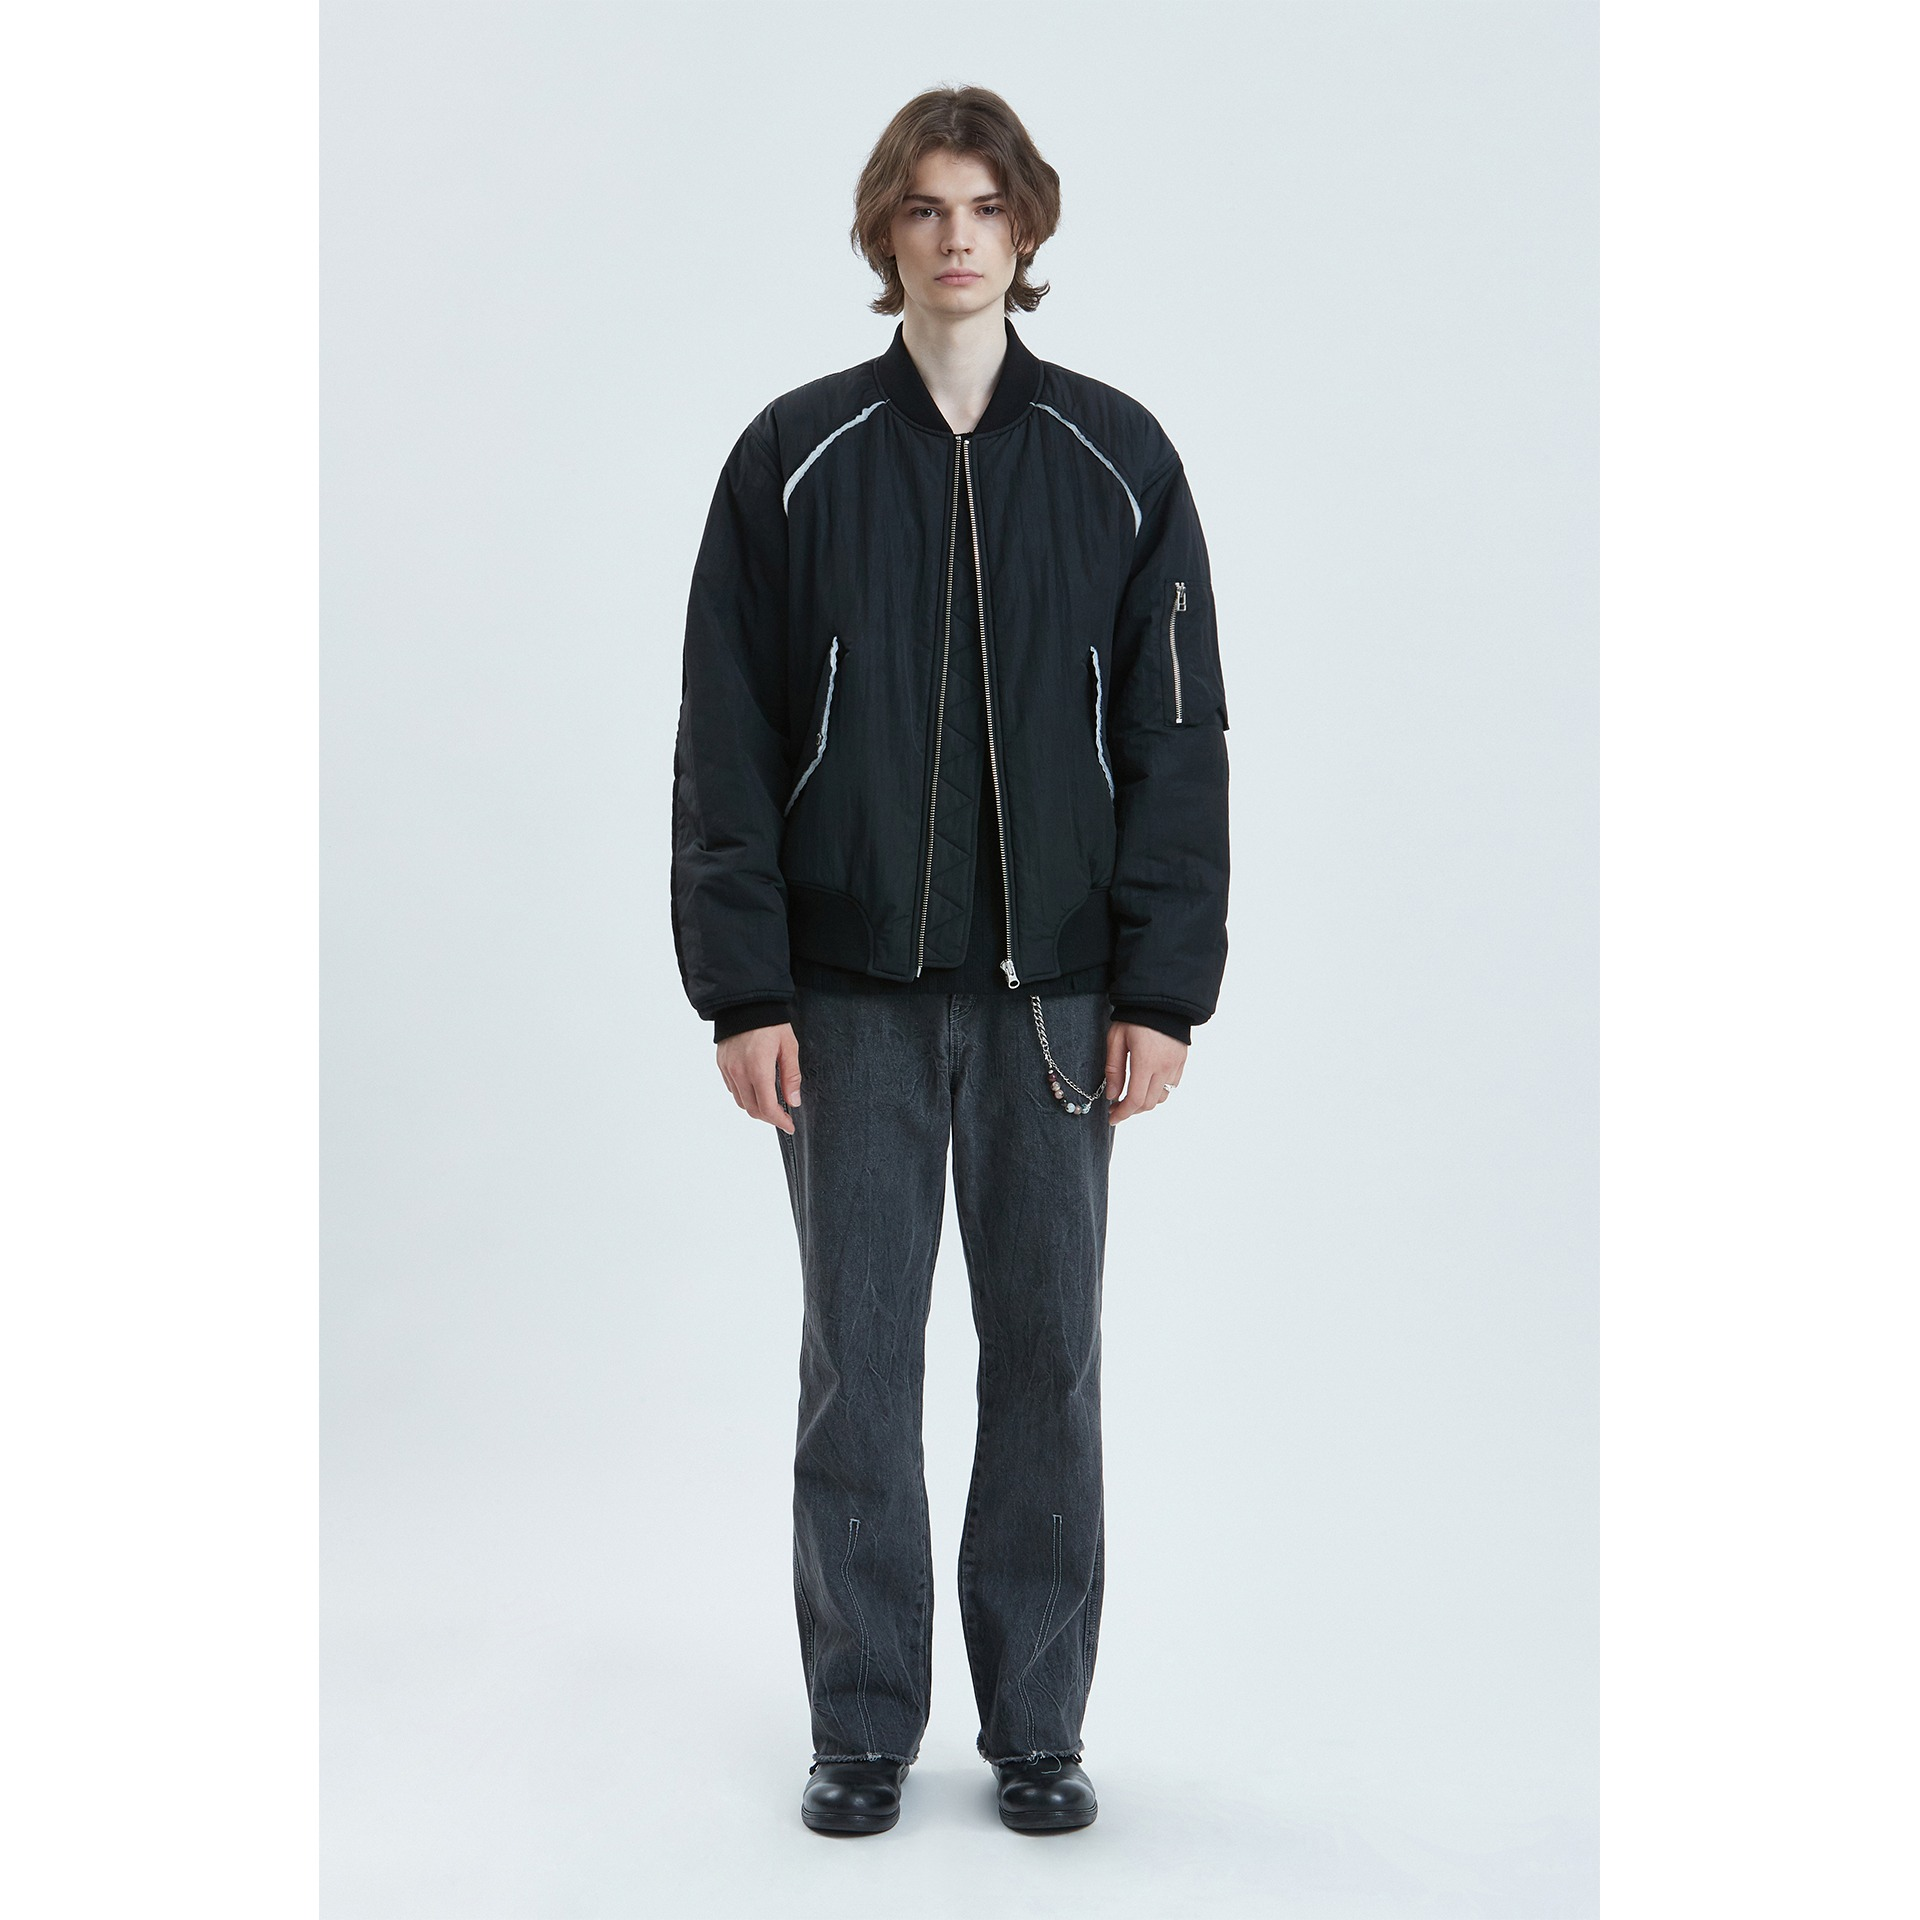 LIFUL MA-1 PADDED BOMBER JACKET black